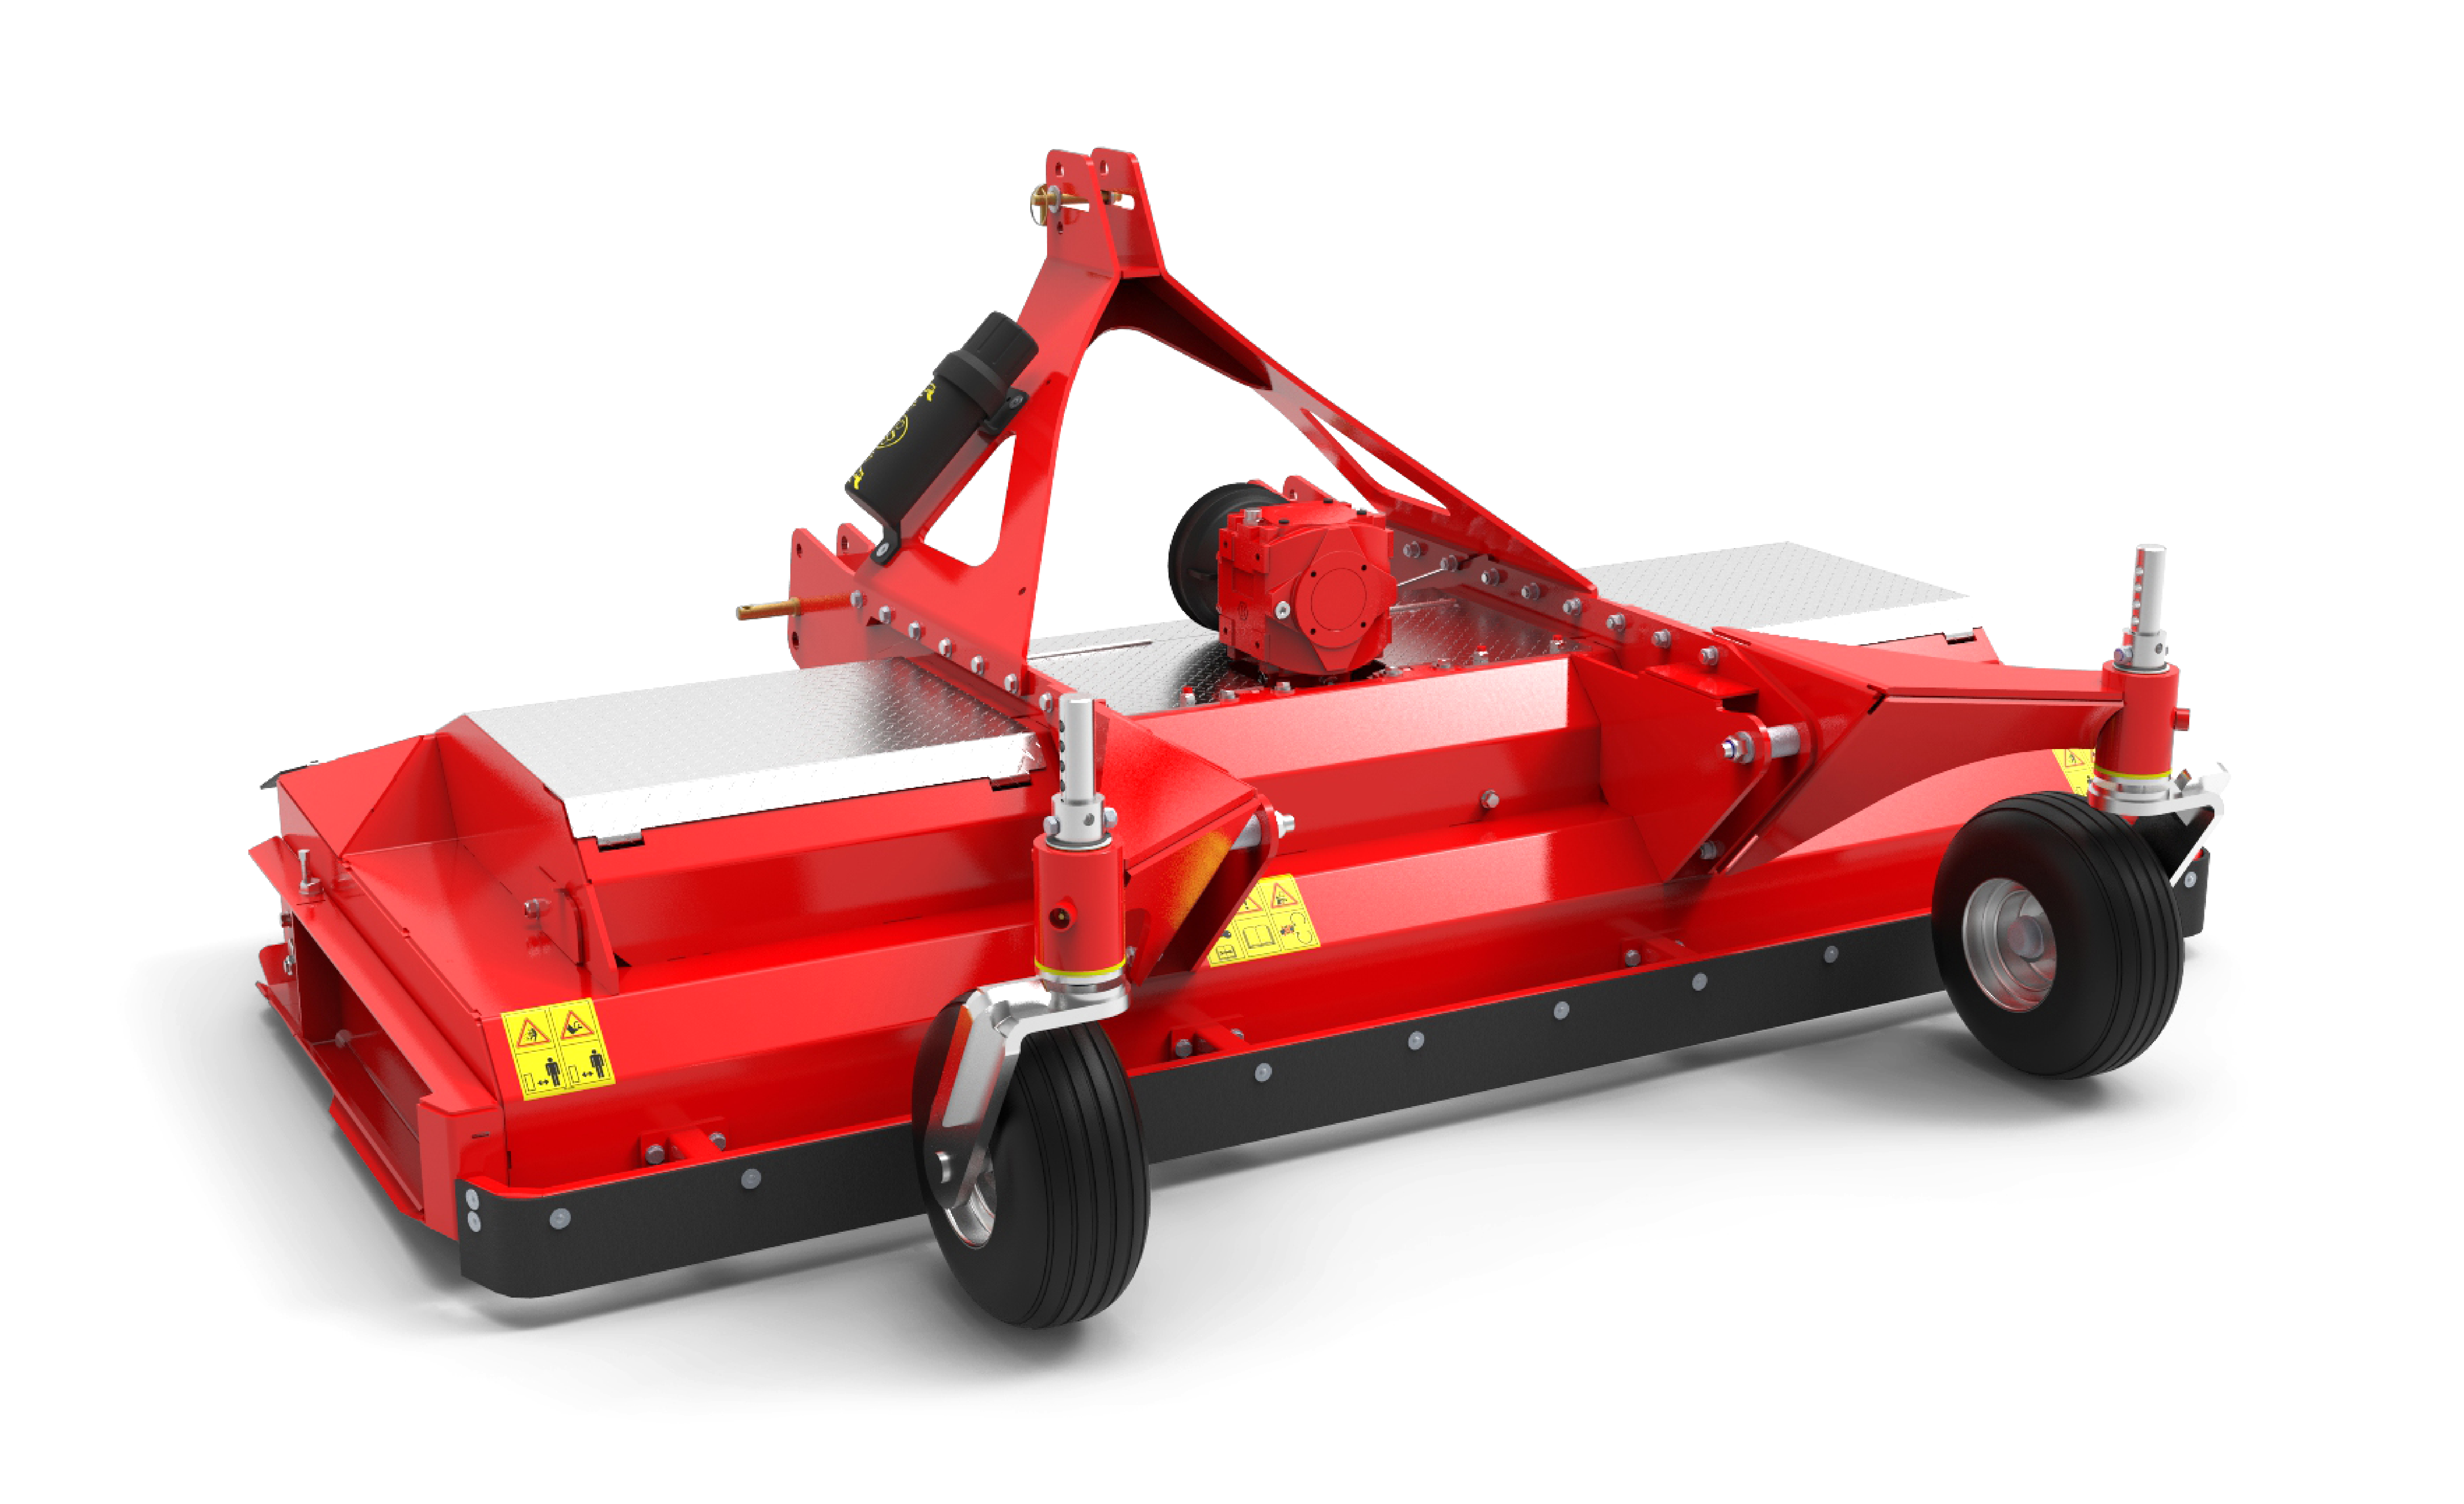 ProCut-FM Mower Rear View Red